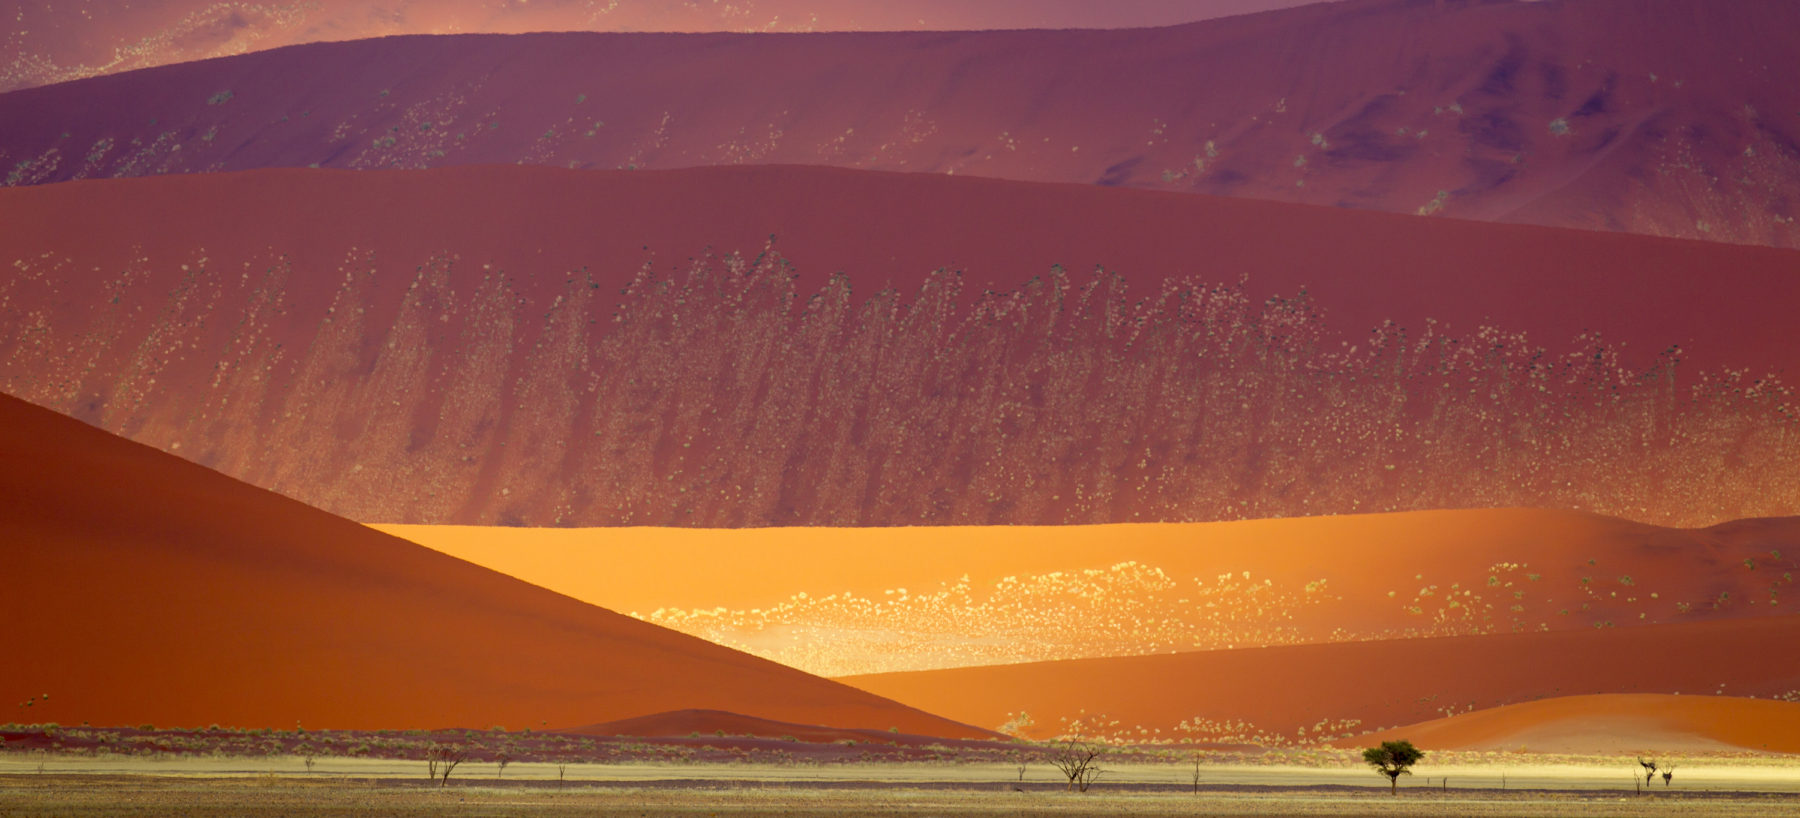 Namib-Naukluft National Park sand dunes